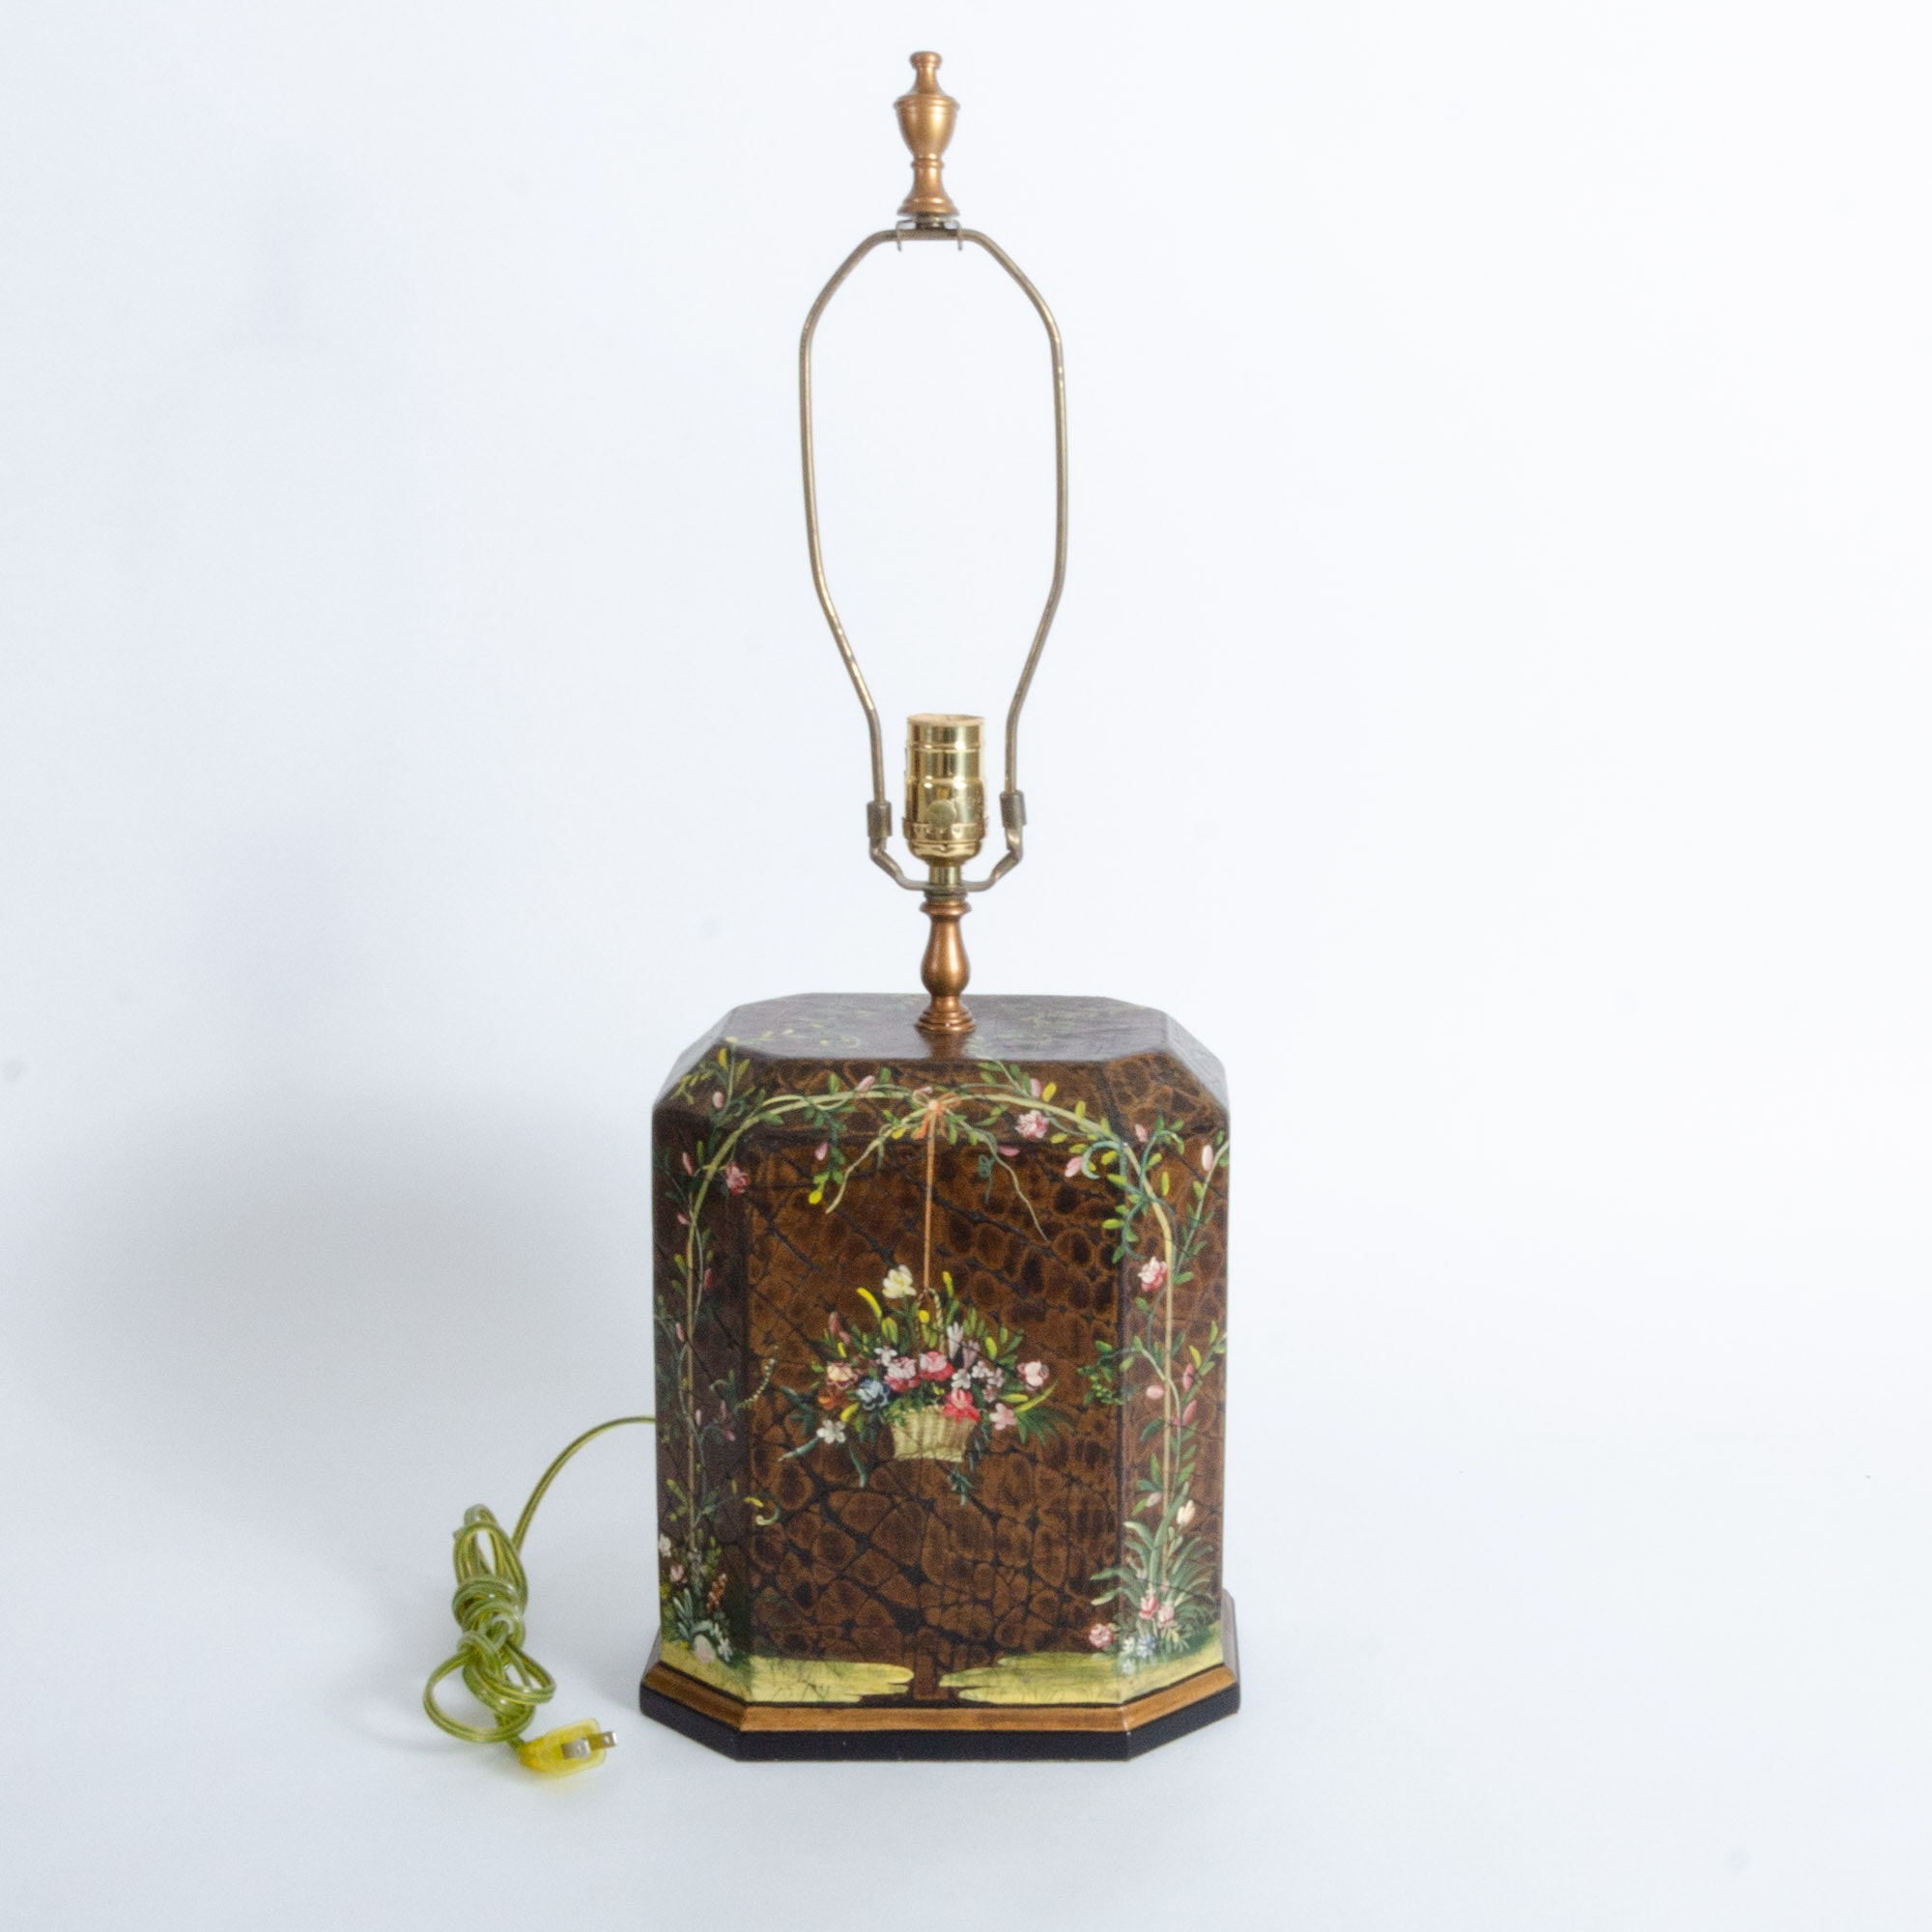 Hand Painted Wood Table Lamp from The Bradburn Gallery